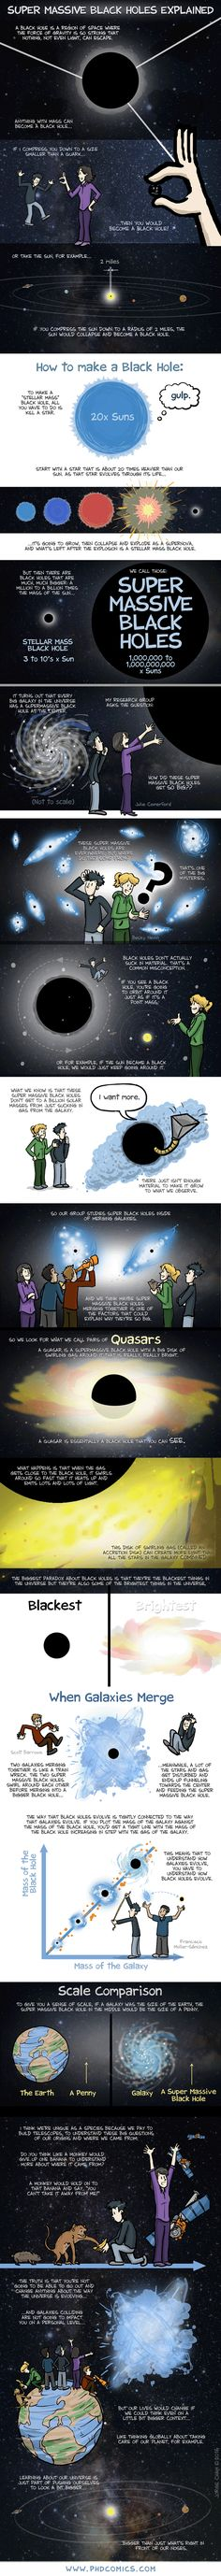 Super Massive Black Holes Explained